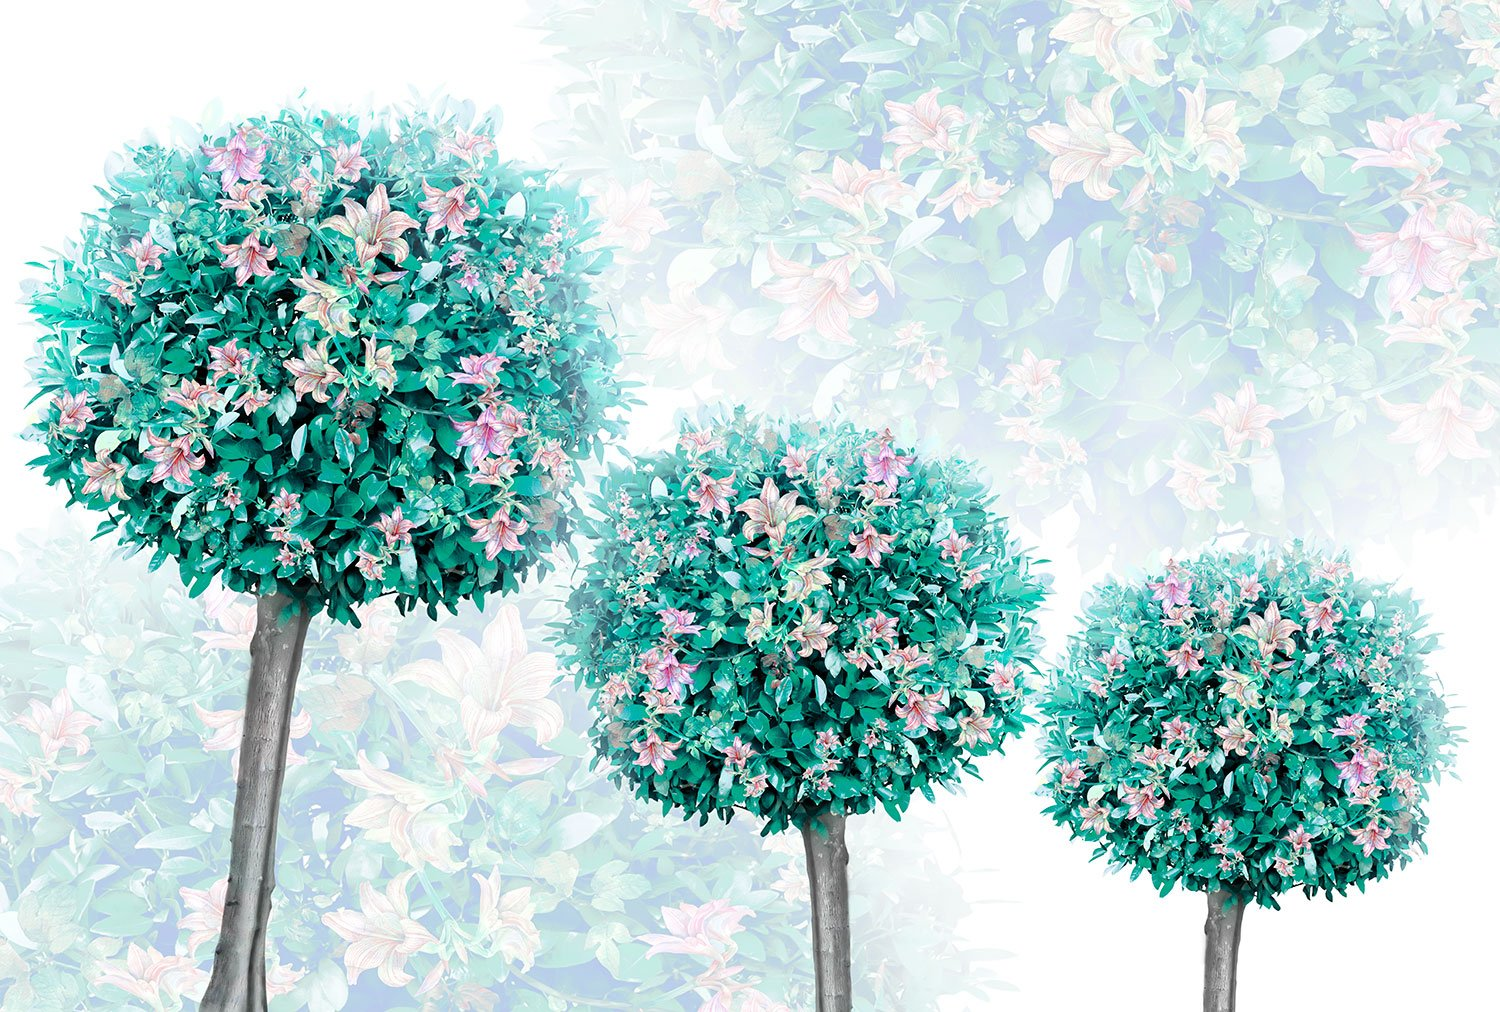 Wall Murals: Trees with flowers